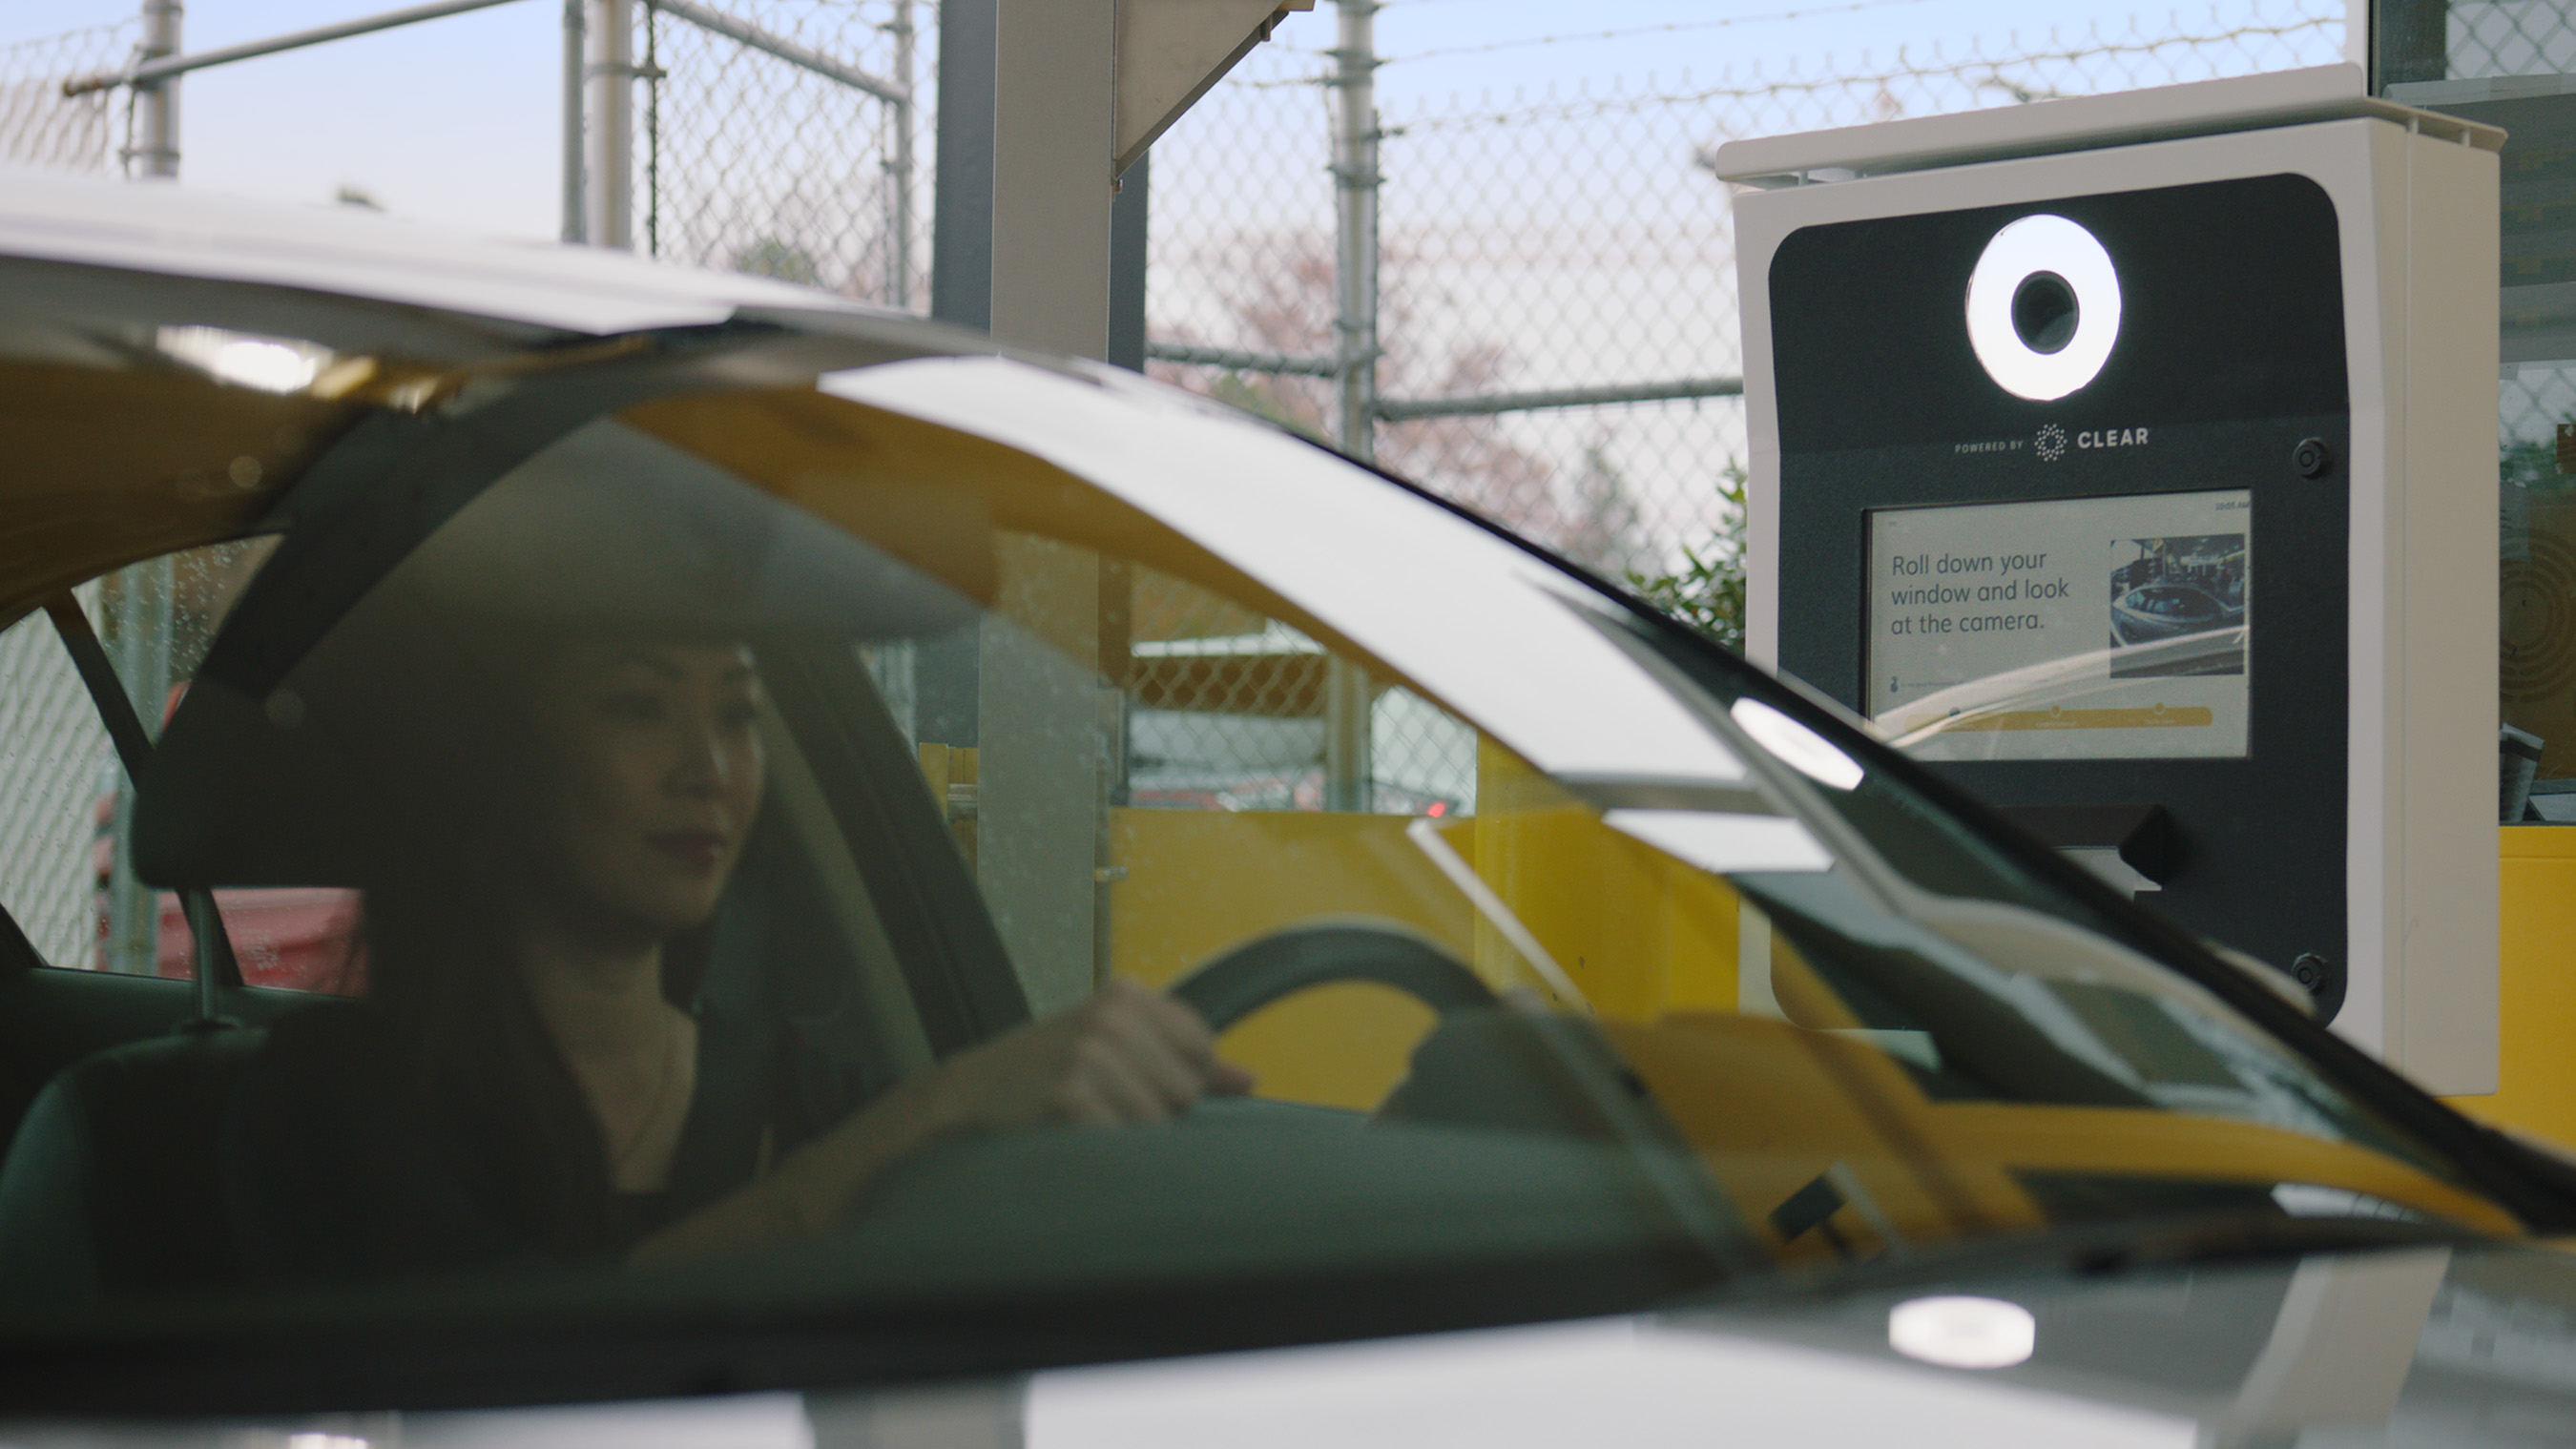 On Tuesday, Dec. 11, 2018 Hertz and CLEAR announced the Hertz Fast Lane powered by CLEAR, a new service that uses biometrics, allowing travelers to get through the exit gate and on the road in 30 seconds or less with just a look or tap of their finger. It is now available at the Hartsfield-Jackson Atlanta International Airport (ATL), with 40 more locations expected in 2019.